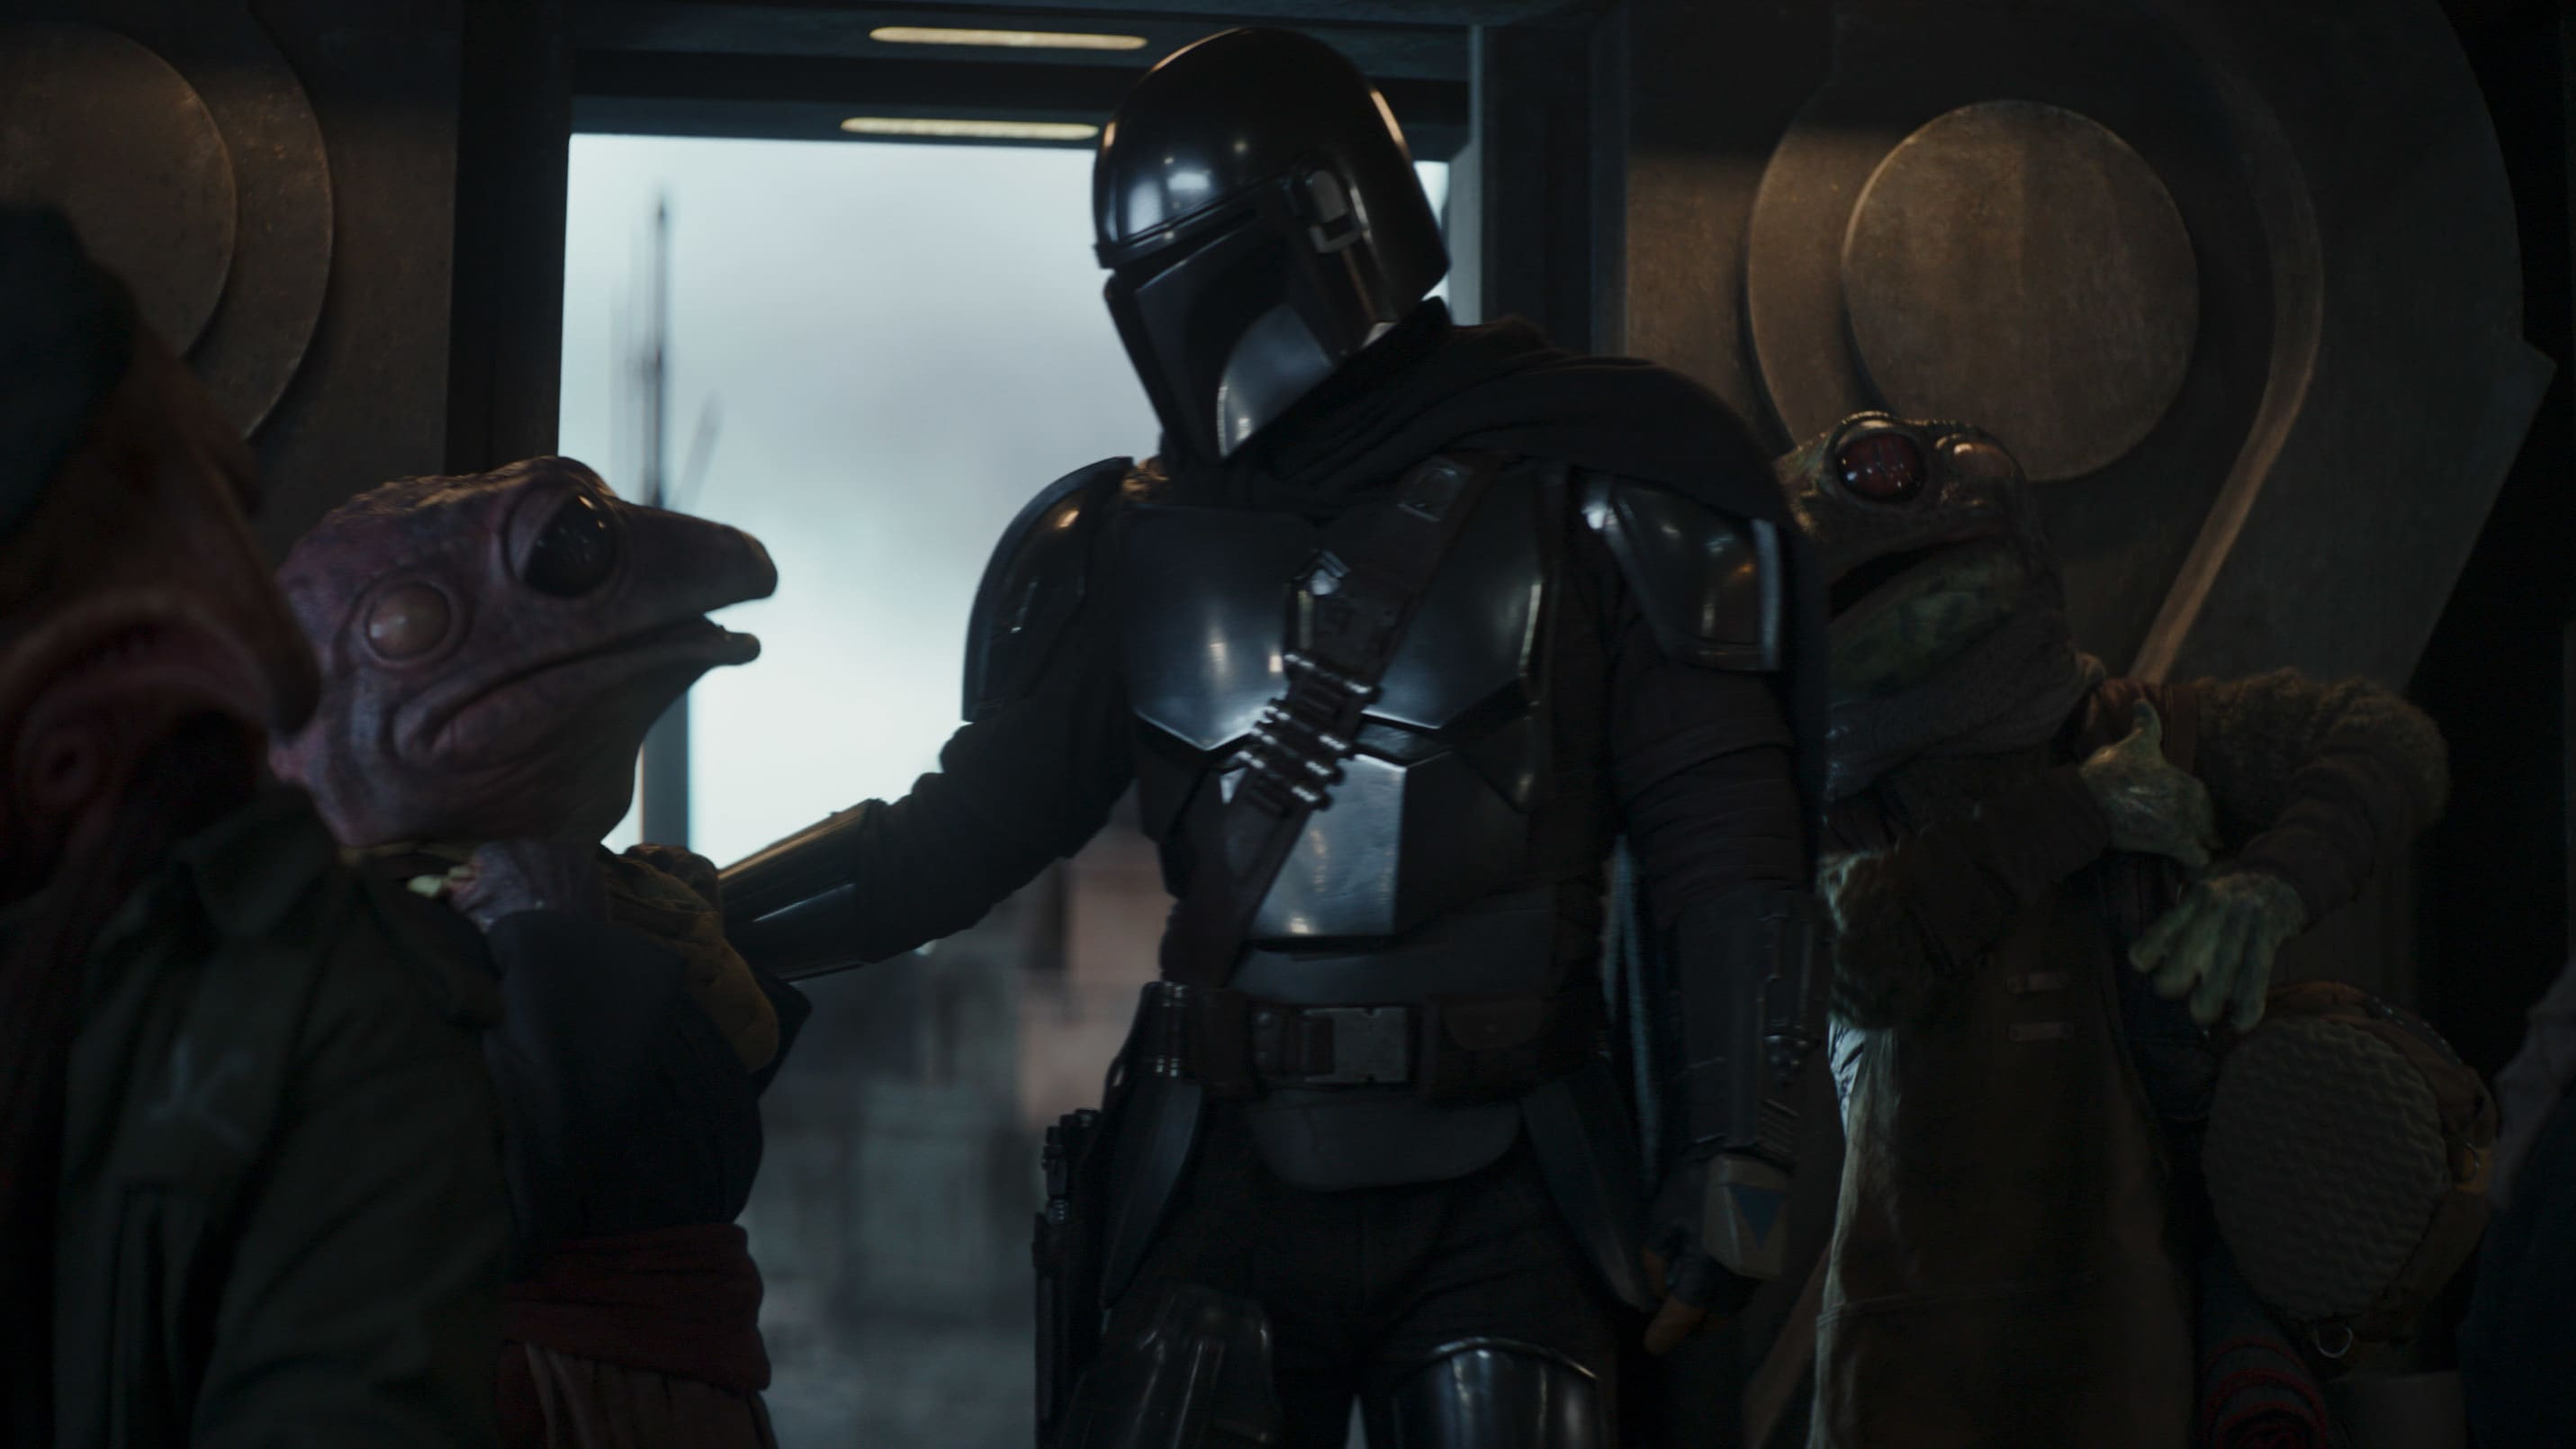 (Center, l-r): Frog Lady and the Mandalorian (Pedro Pascal) in Lucasfilm's THE MANDALORIAN, season two, exclusively on Disney+. © 2020 Lucasfilm Ltd. & ™. All Rights Reserved.